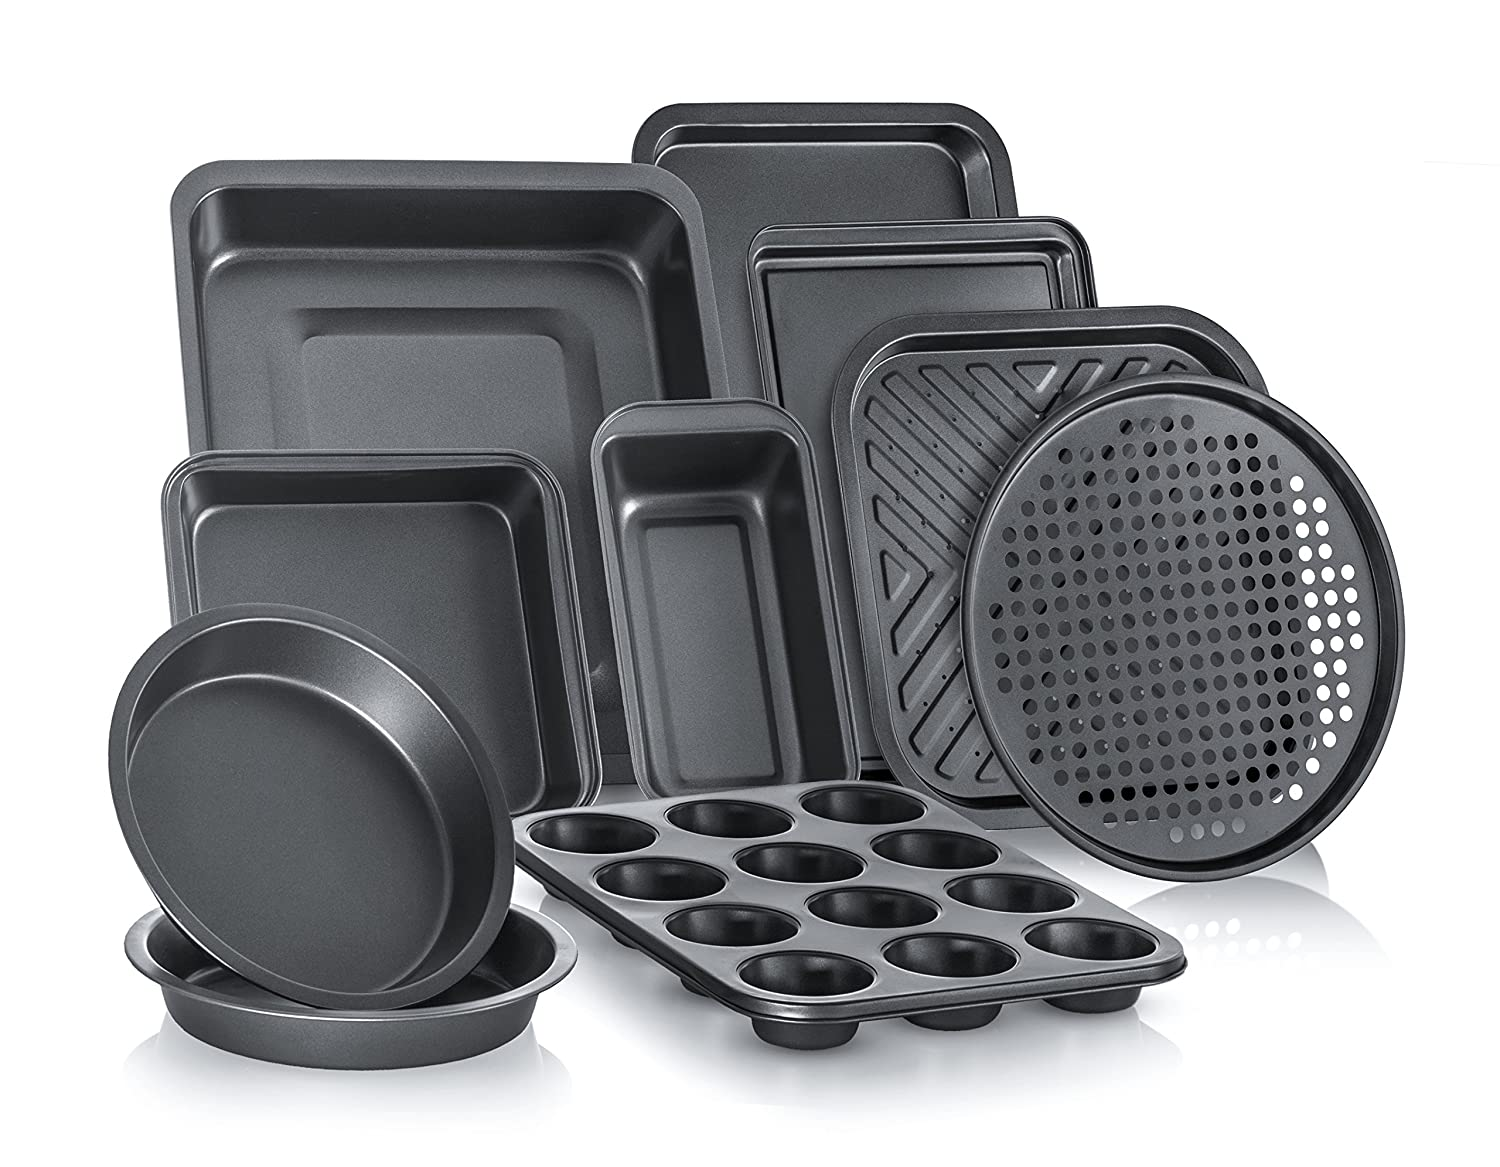 Perlli Complete Bakeware Set 10-Piece Non-Stick, Oven Crisper, Pizza Tray, Roasting, Loaf, Muffin, Square, 2 Round Cake Baking Pans, Large and Medium Nonstick Cookie Sheet Bake Ware for Home Kitchen P-BK-10SET